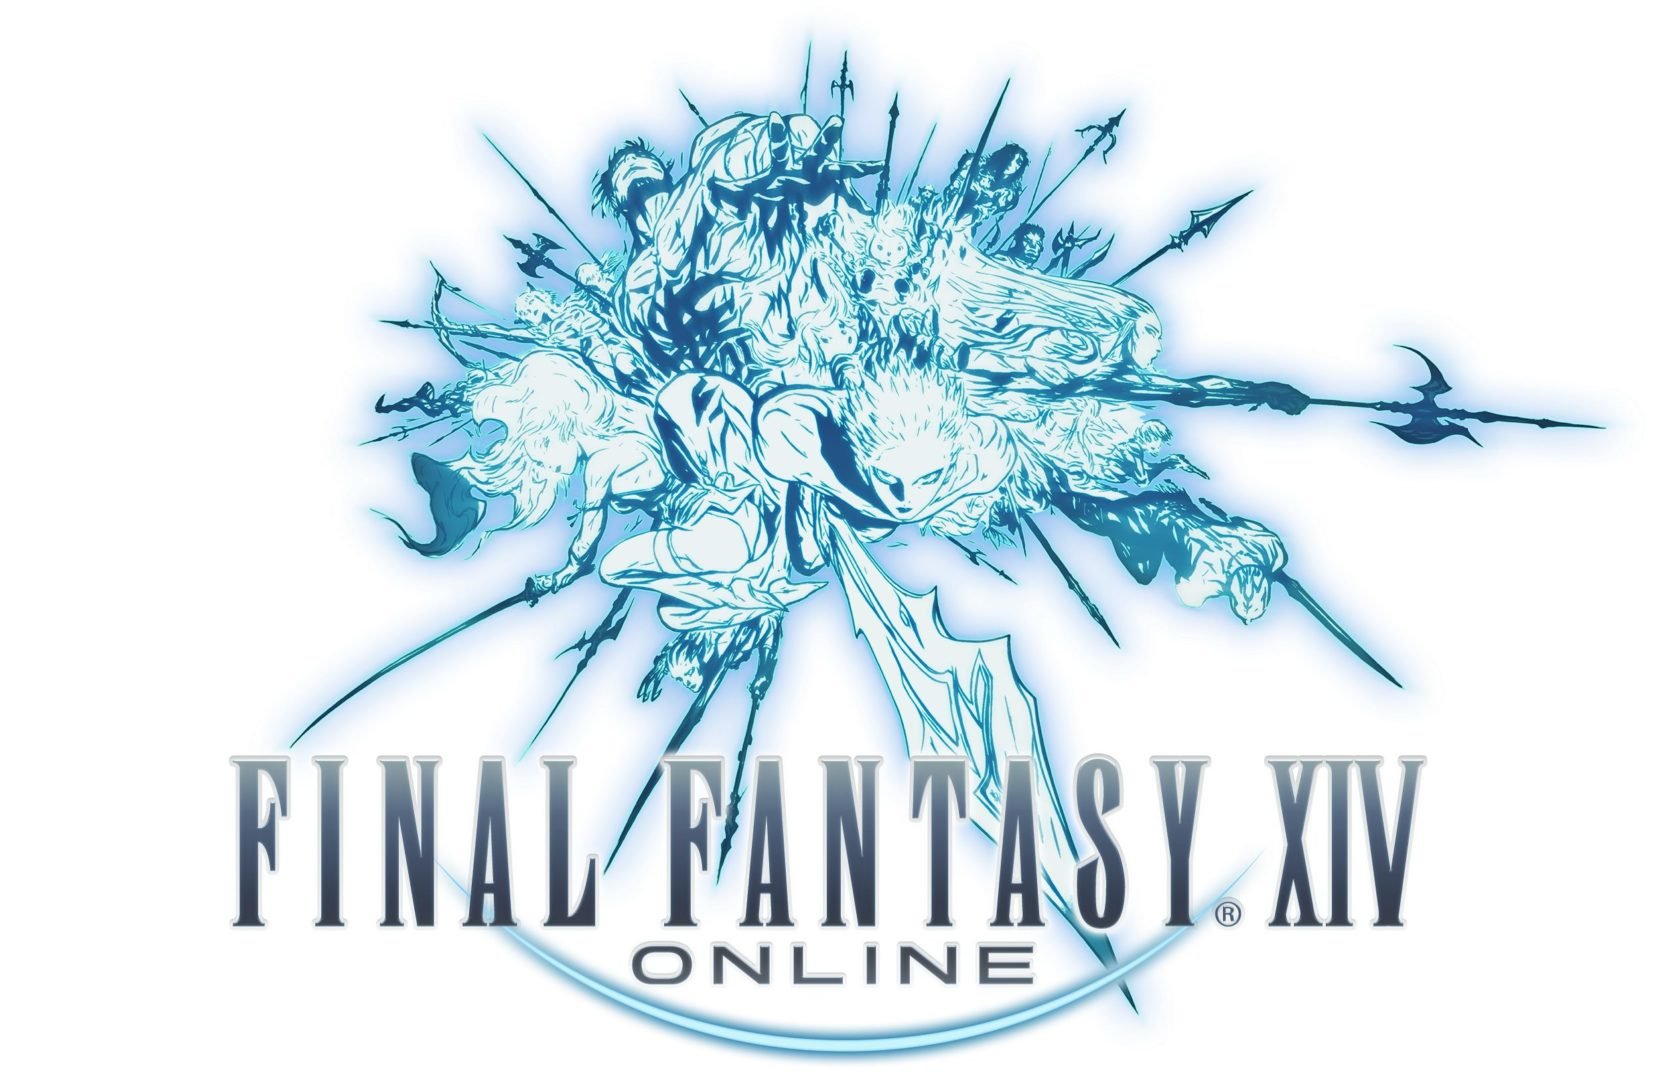 A wealth of new assets and information for Final Fantasy